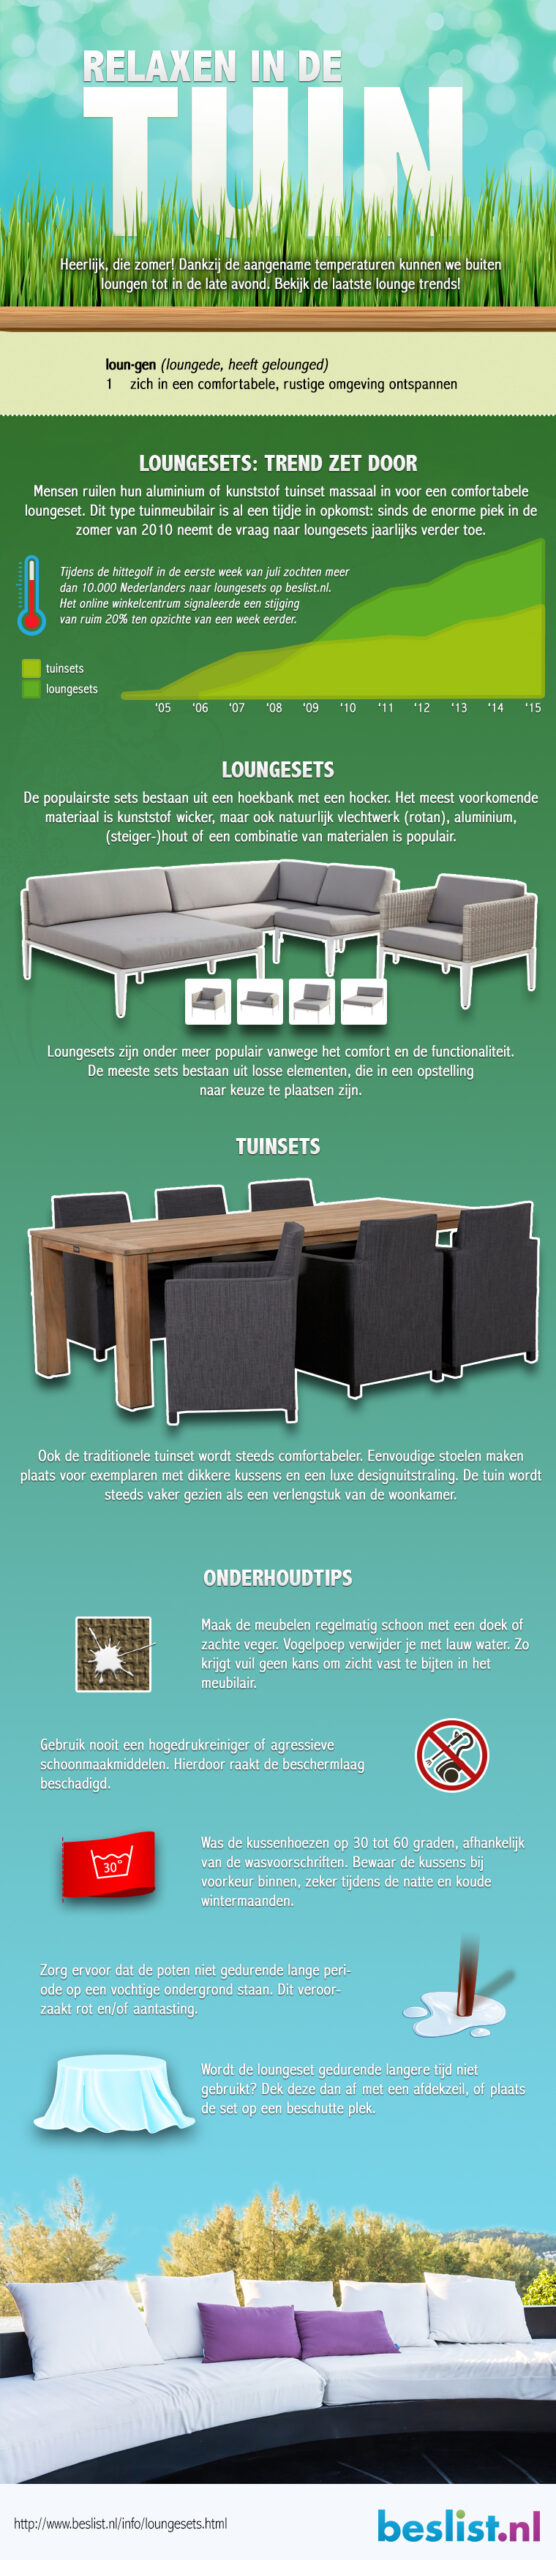 Infographic: Loungesets